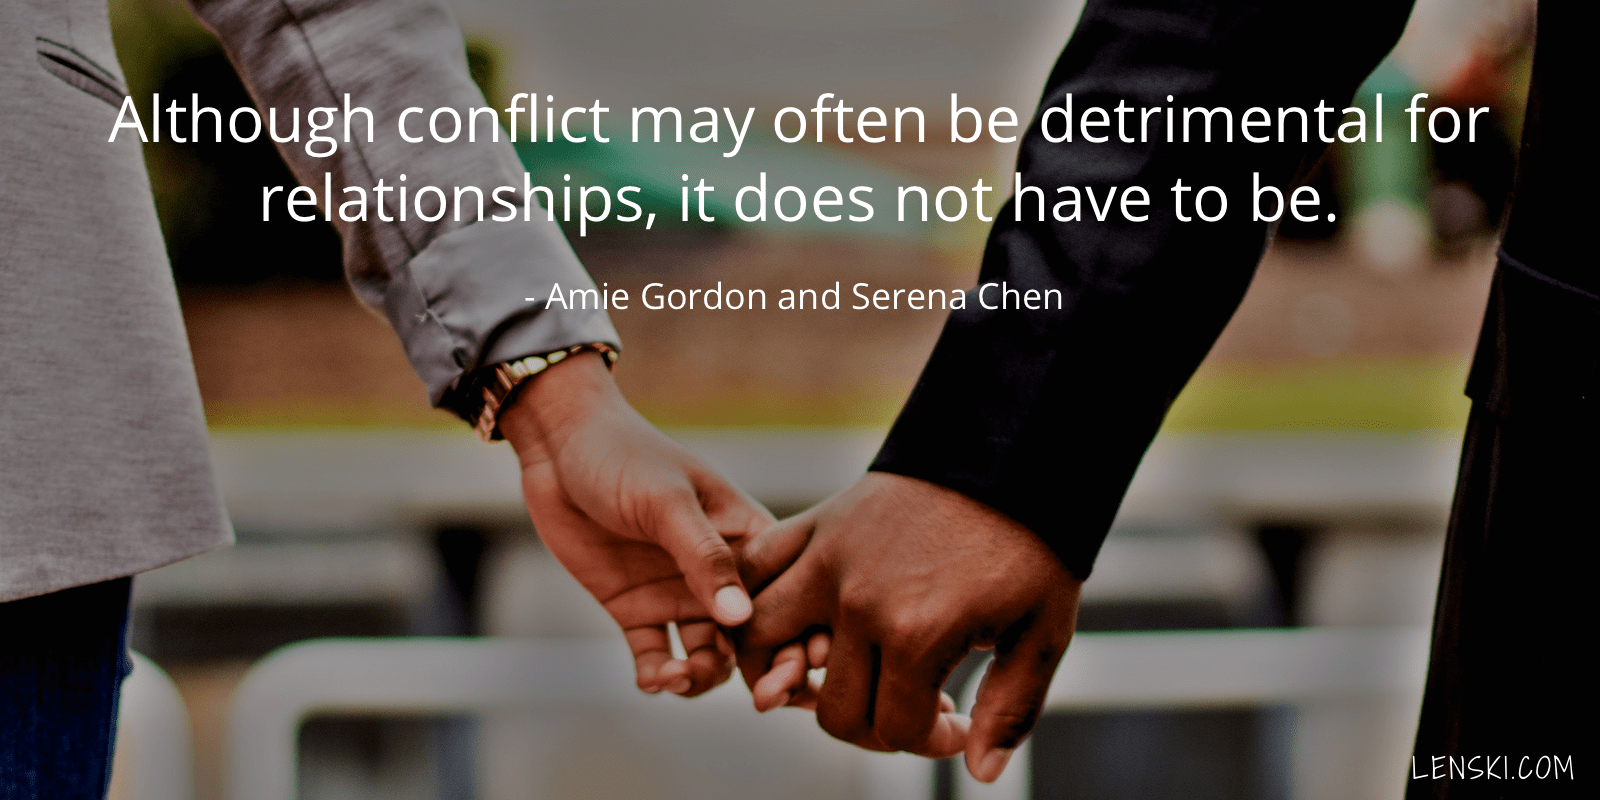 Although conflict may often be detrimental for relationships, it does not have to be. - Amie Gordon and Serena Chen